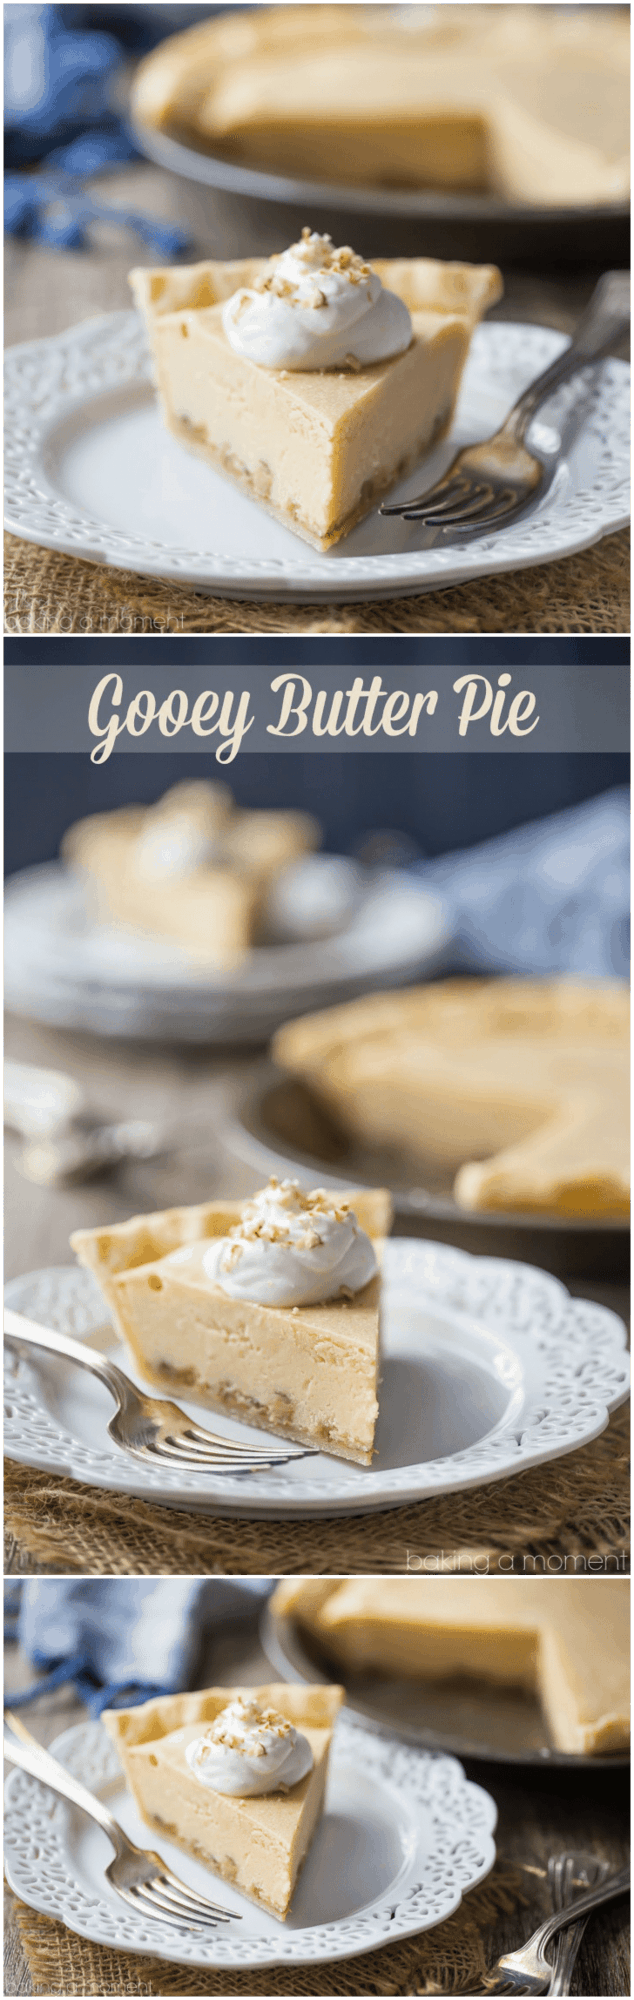 Gooey Butter Pie: Buttery brown sugar custard, salted caramel, and crunchy pecans, cradled in the flakiest ever pie crust!  food desserts pie #ad @whitelilyflour